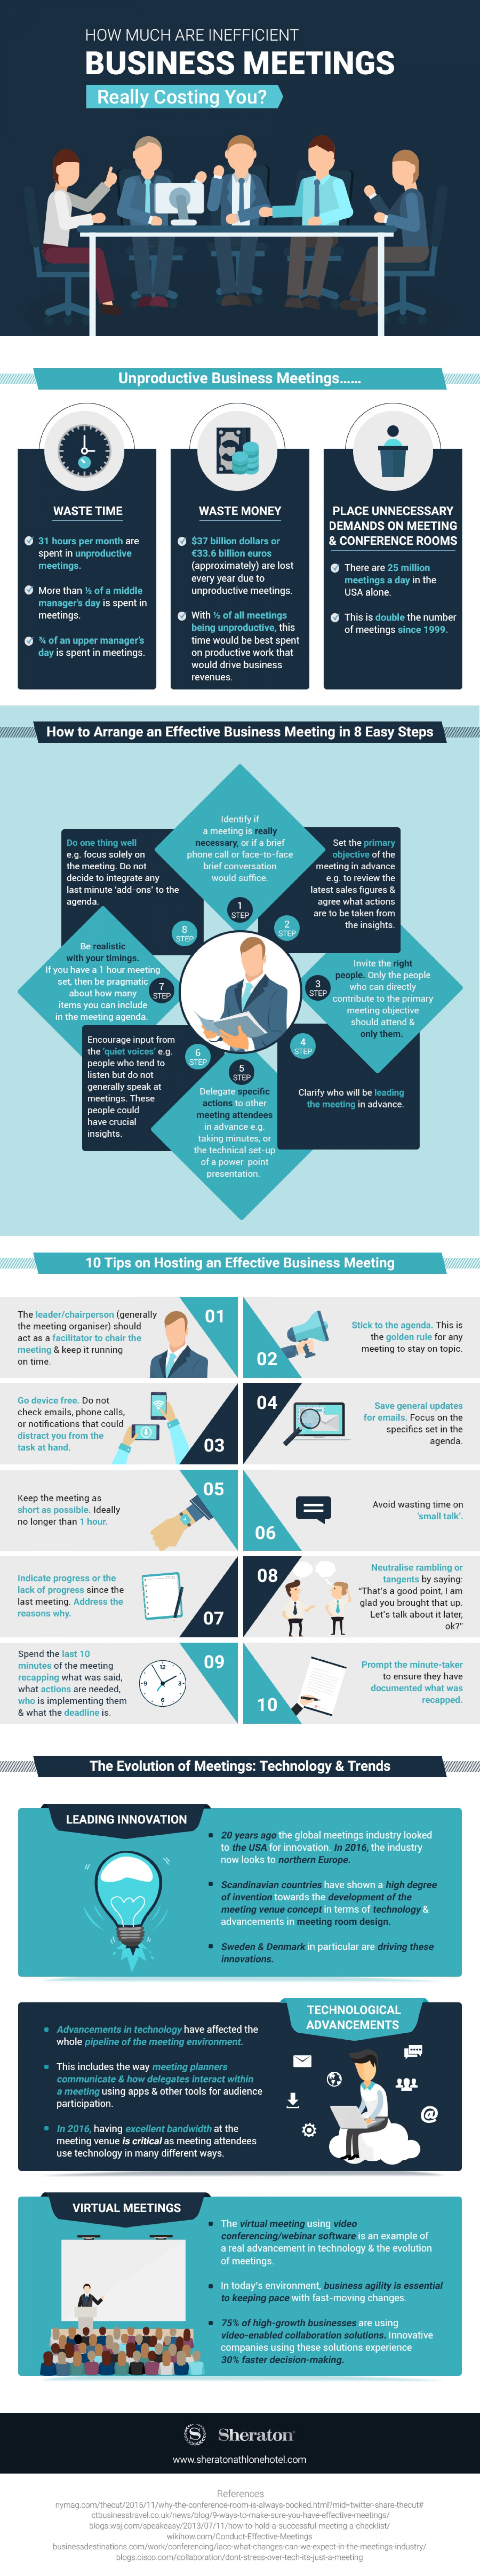 Infographic: How much are inefficient business meetings really costing you?